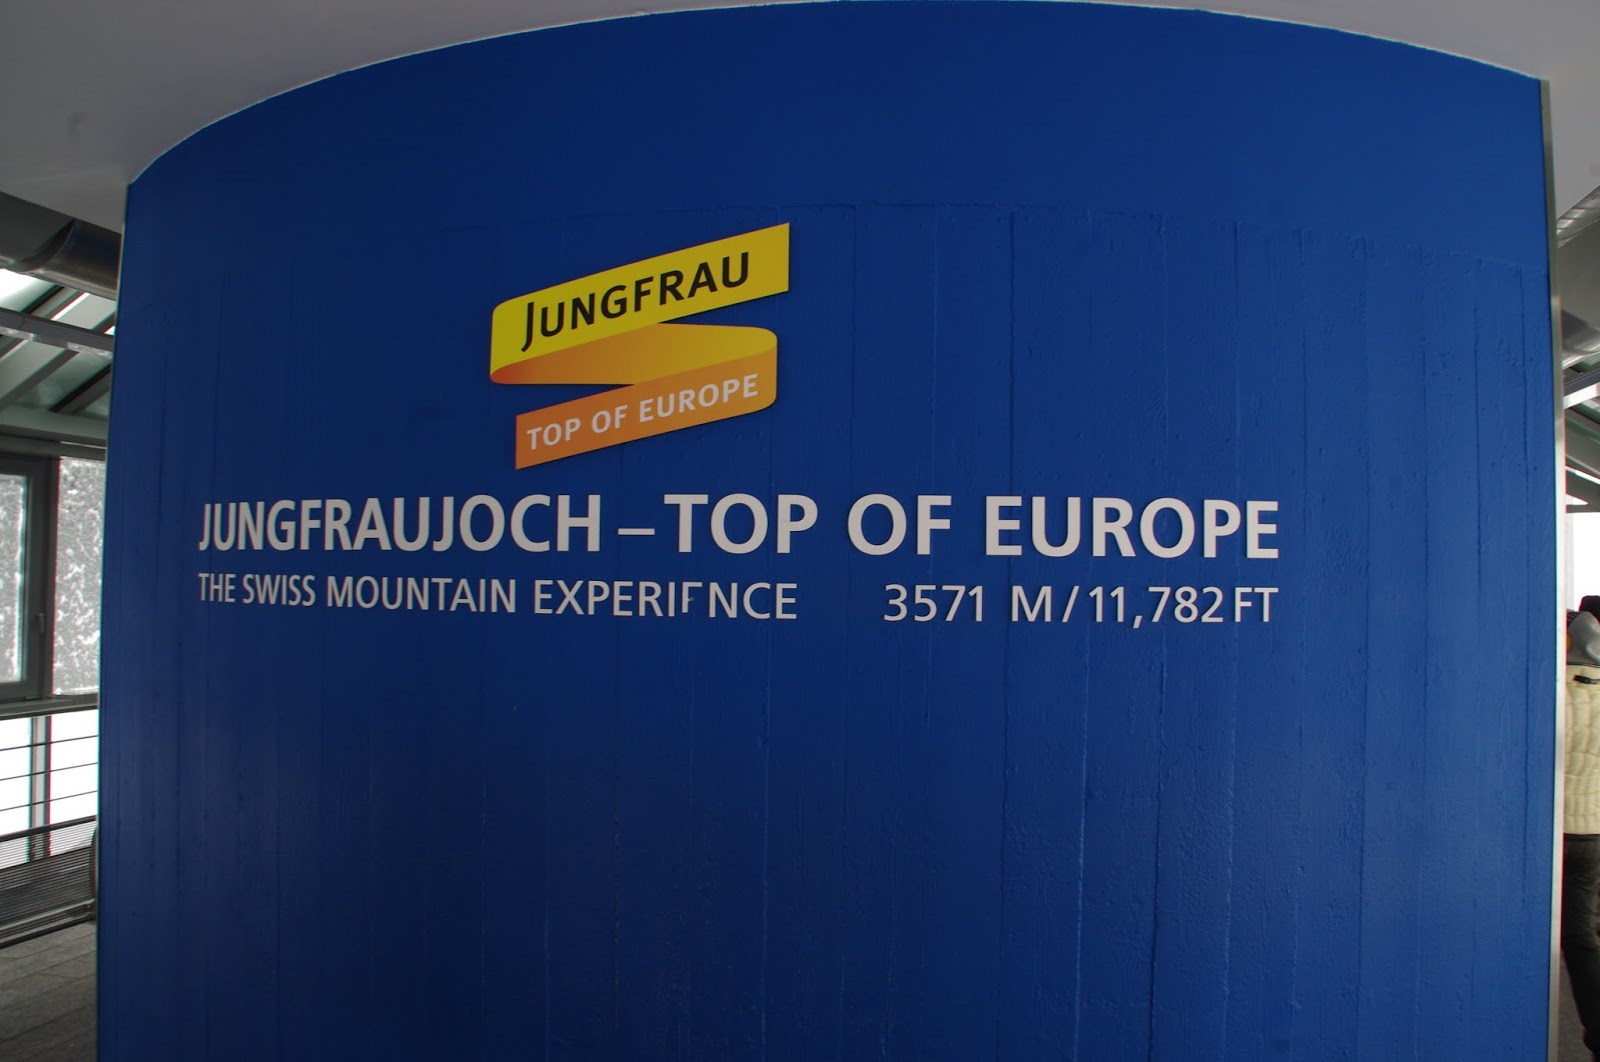 Jungfraujoch Top of Europe Sign